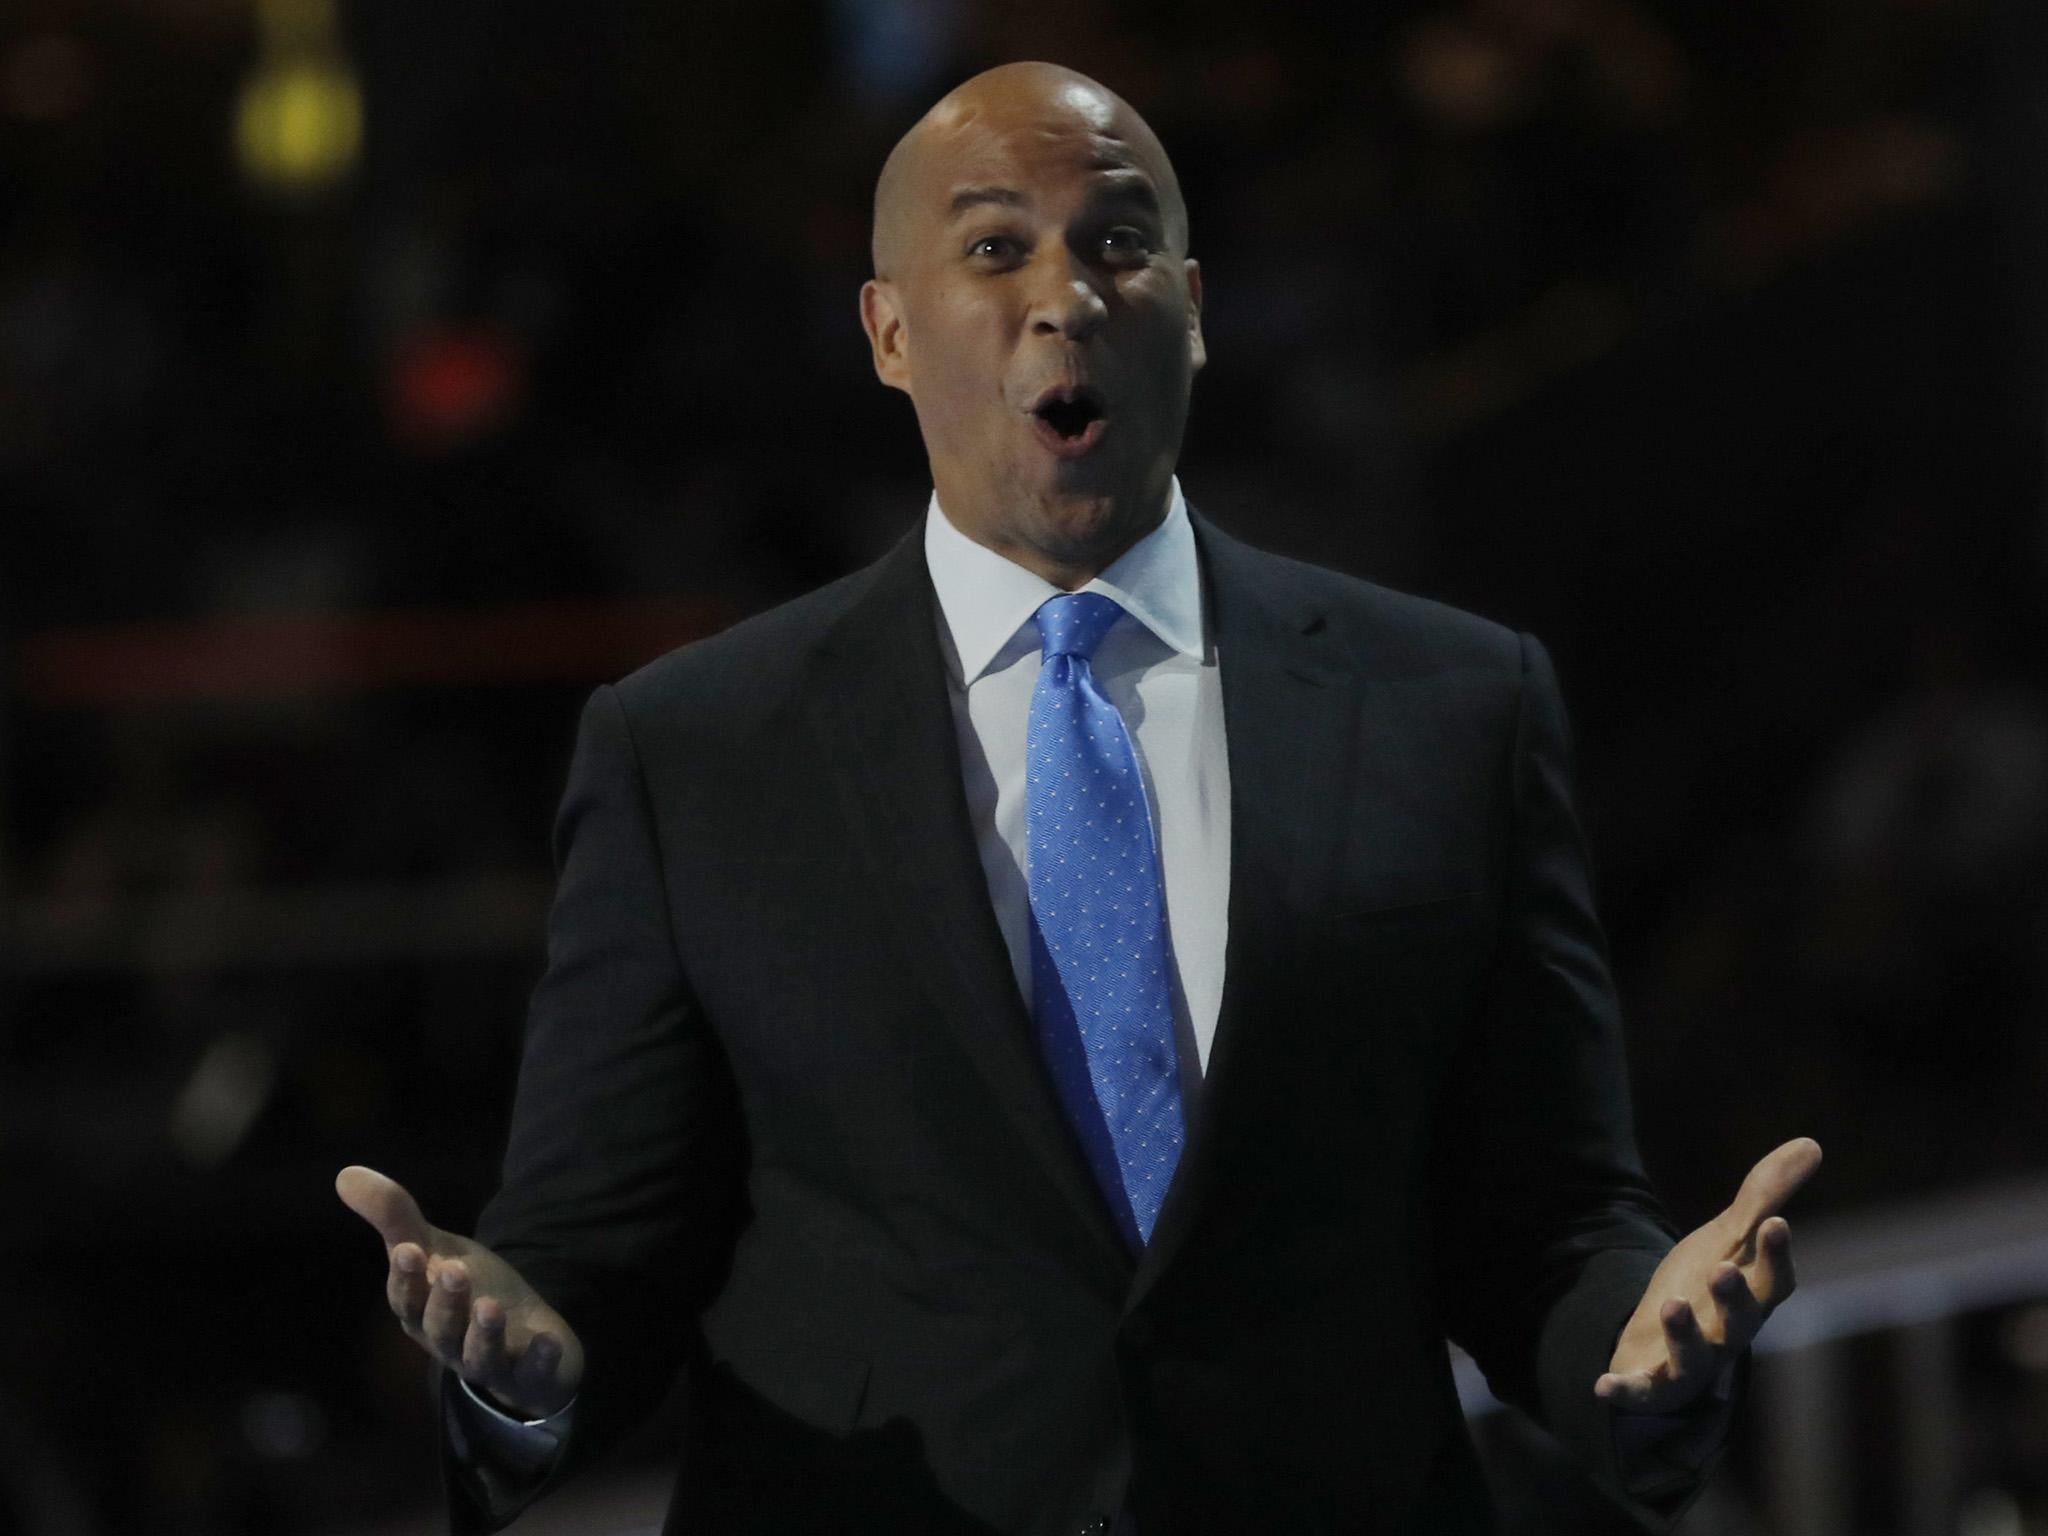 Cory Booker just proved he's the one to watch in the Democratic presidential nominee contest